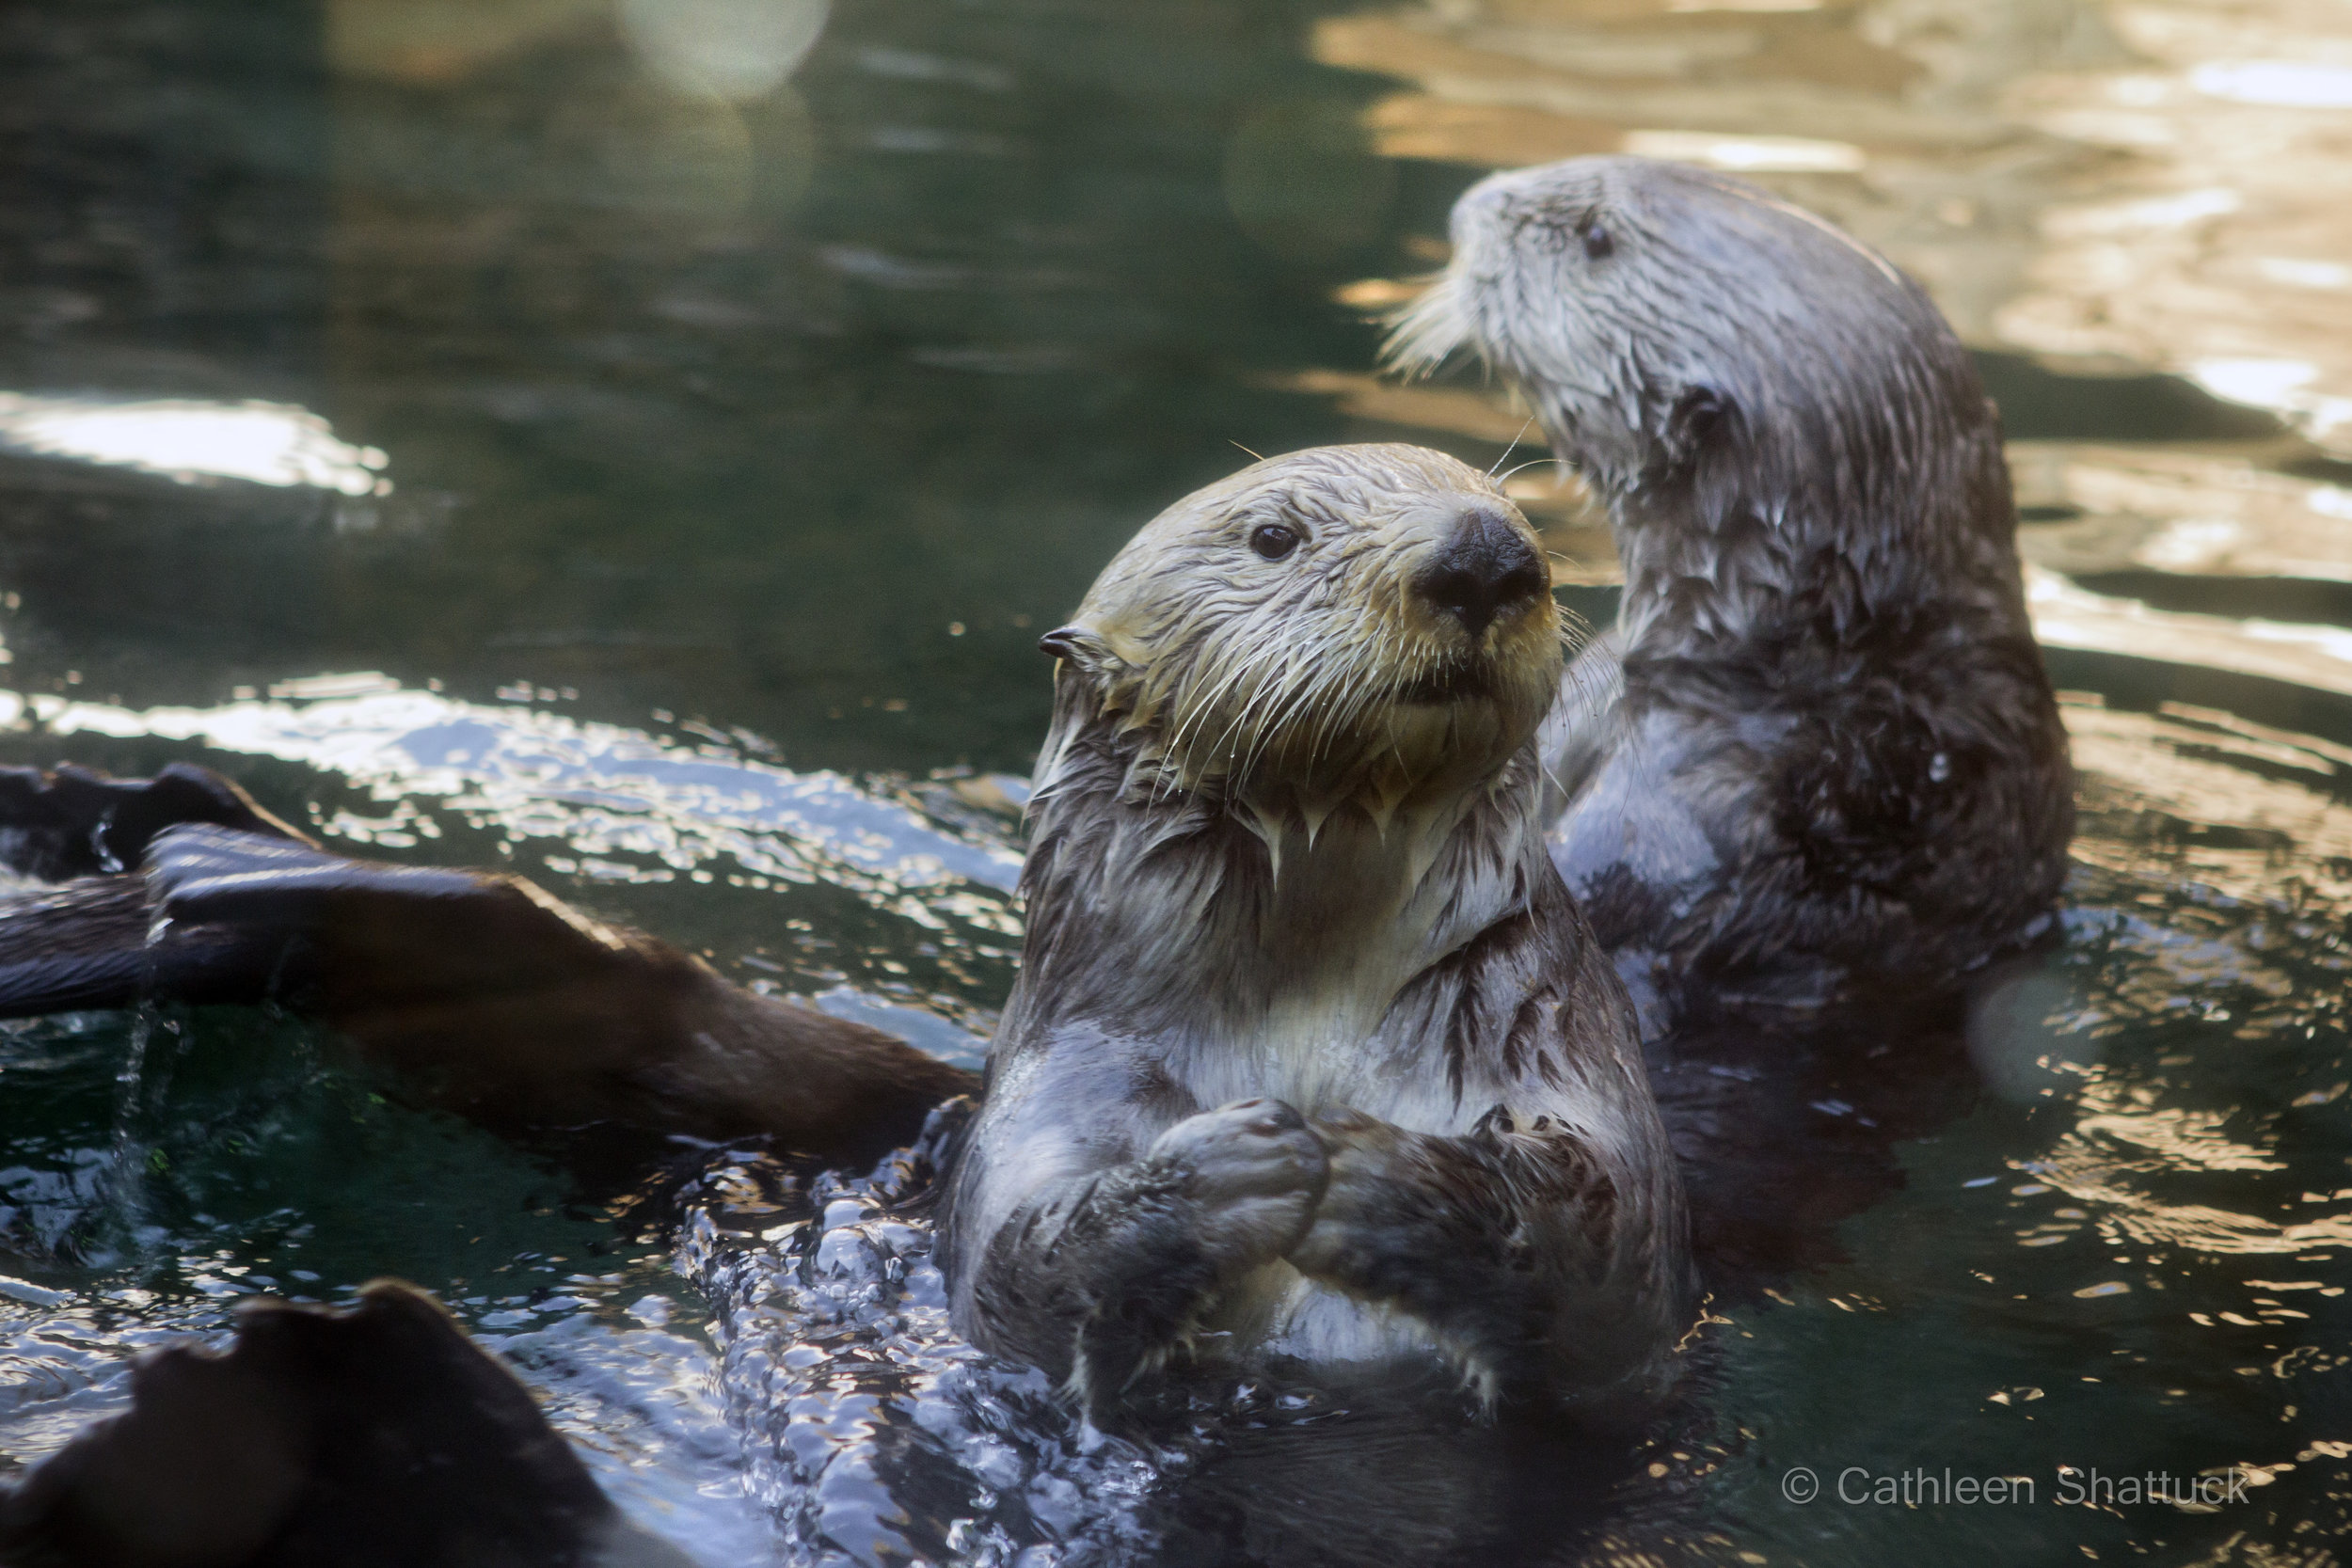 Ballet Dancing Sea Otter Puts Her Arms in First Position